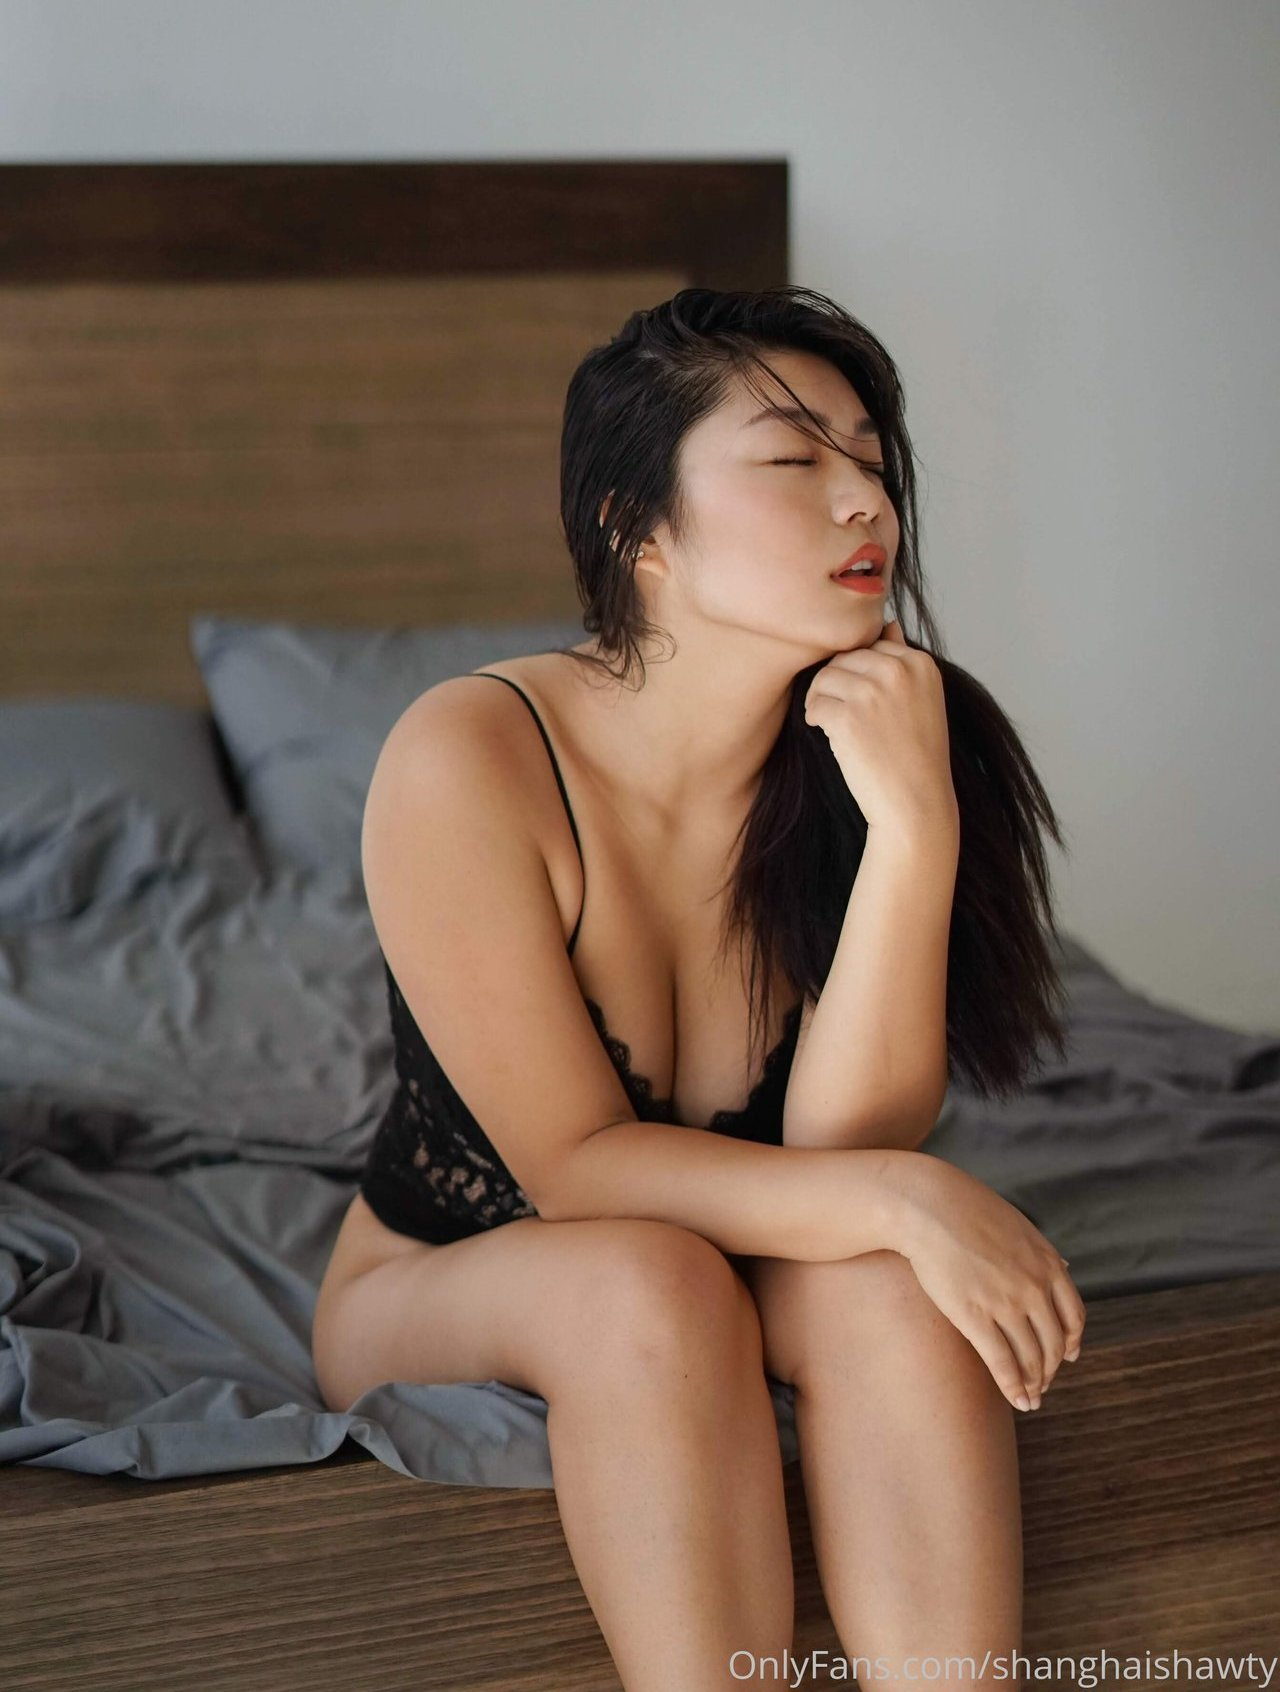 Shanghai Shawty Xanqiue Onlyfans Sexy Leaks 0008